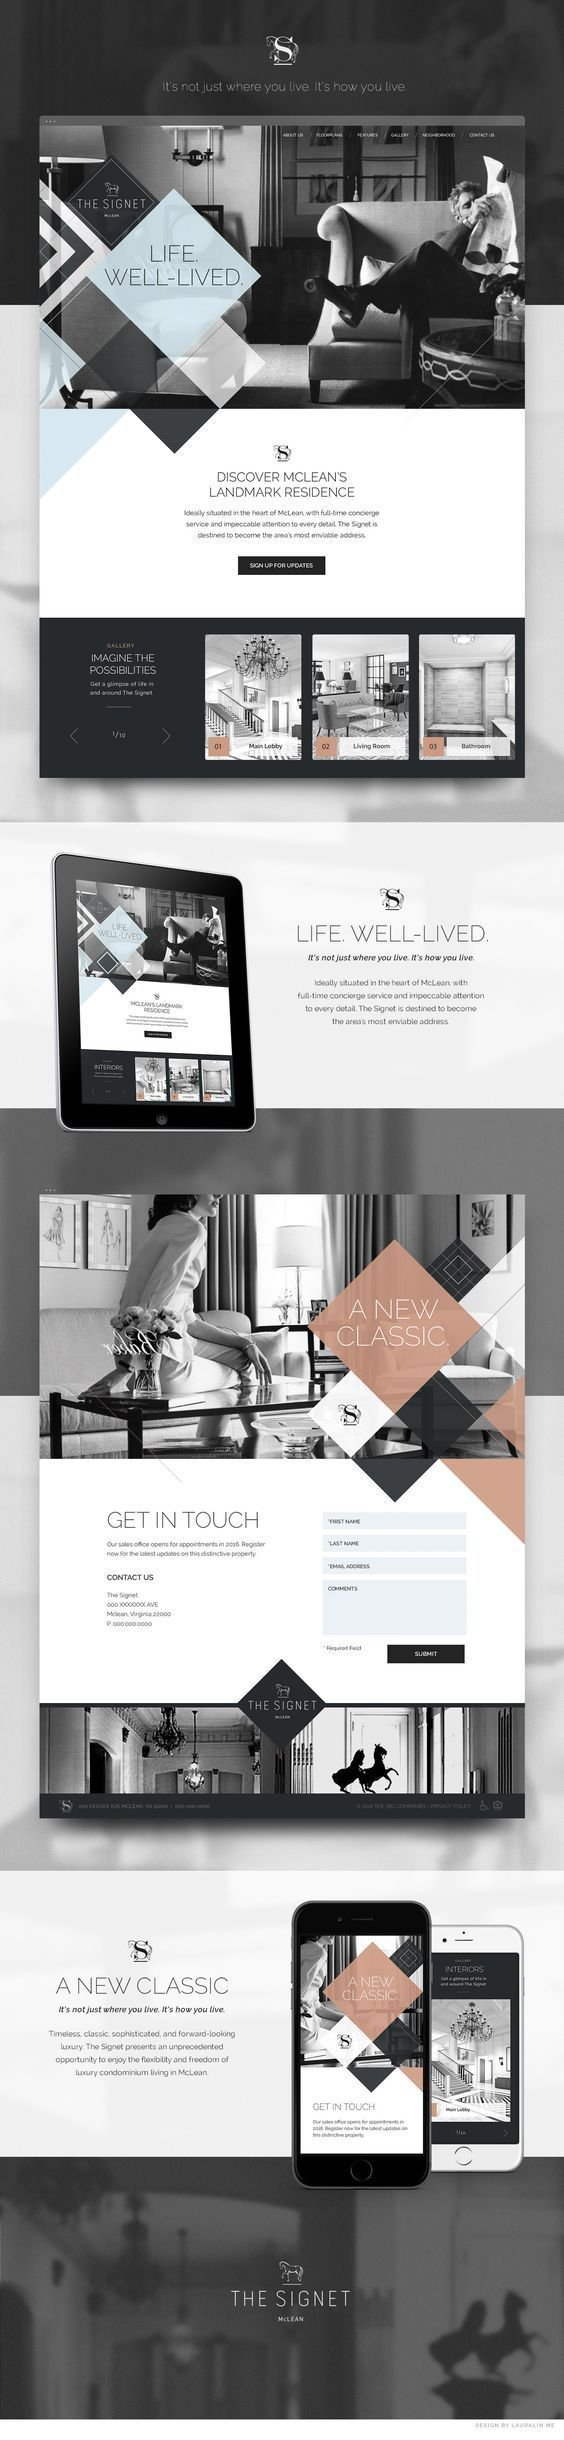 The Signet Luxury Homes Web Design by Laura Lin | Fivestar Branding – Design and Branding Agency & Inspiration Gallery. If you like UX, design, or design thinking, check out theuxblog.com